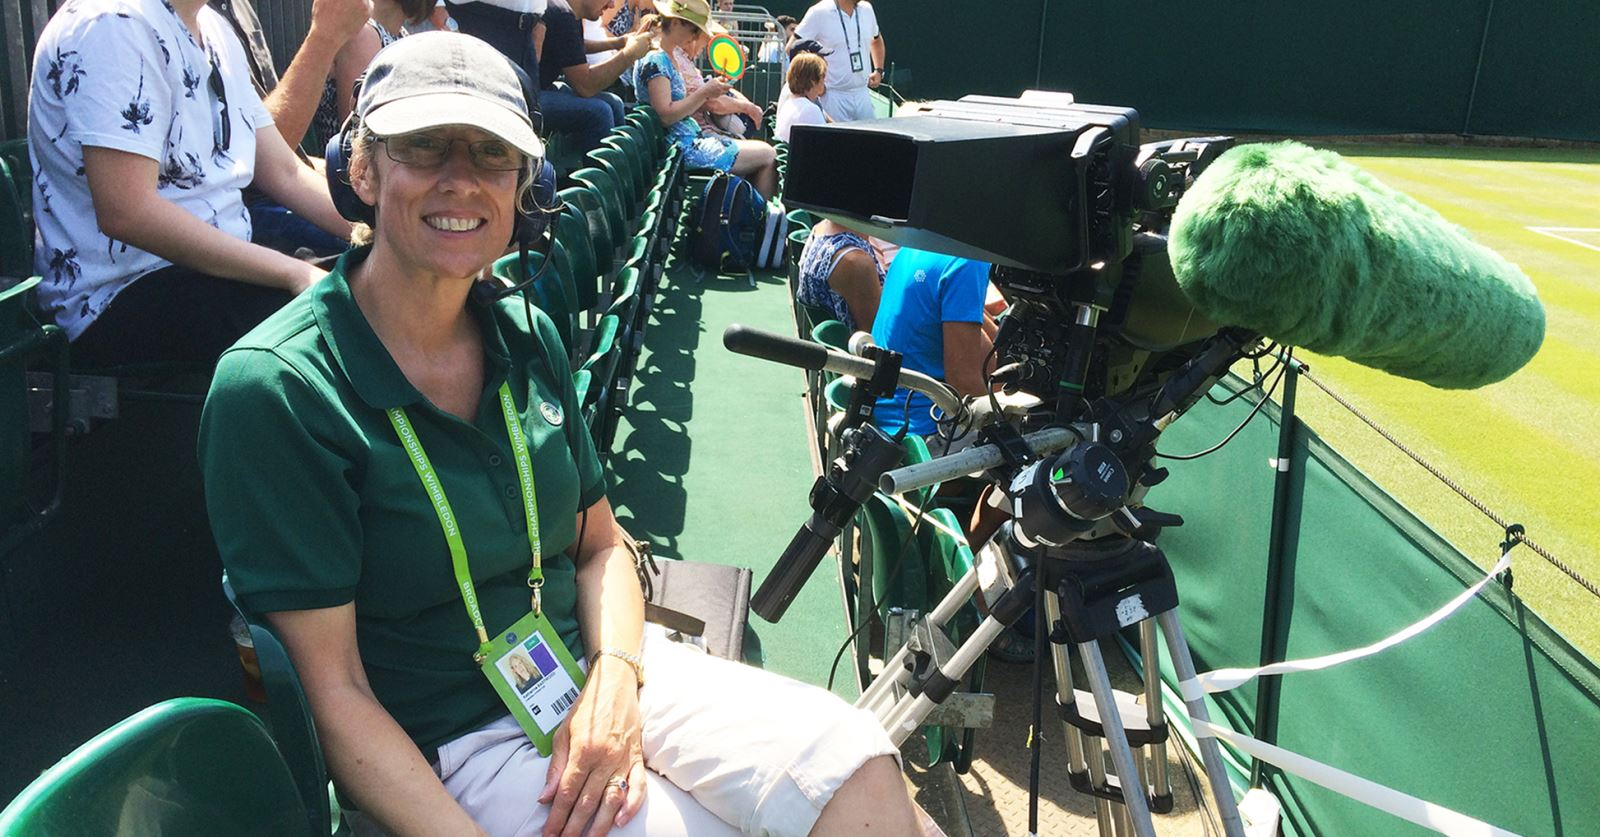 GTC member Katy Eastwood waiting for play to start on Court 17 at Wimbledon this week